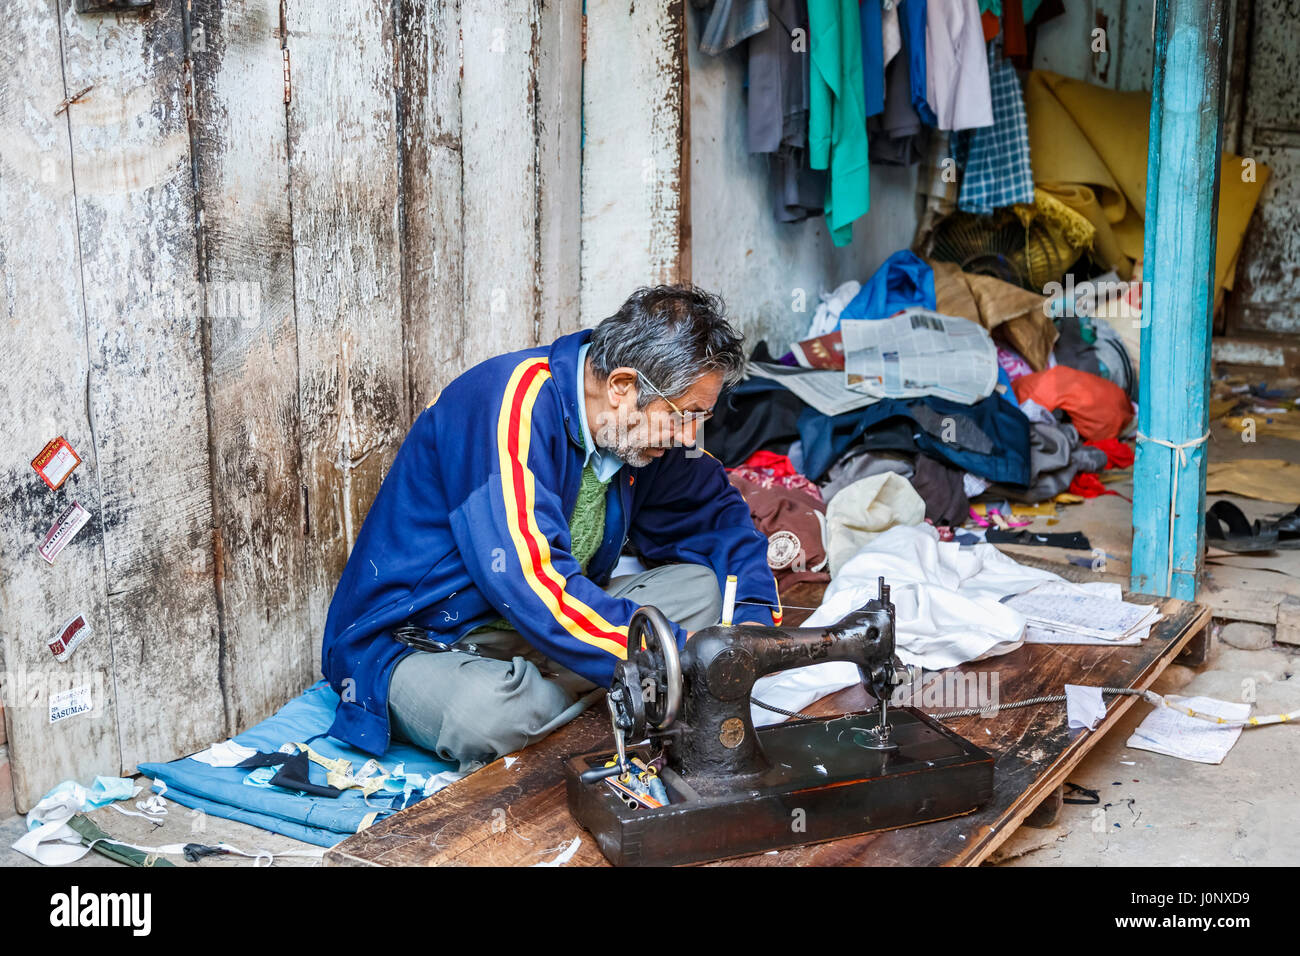 Local Indian man working as a tailor using an old fashioned sewing machine at a roadside shop in Pragpur heritage - Stock Image